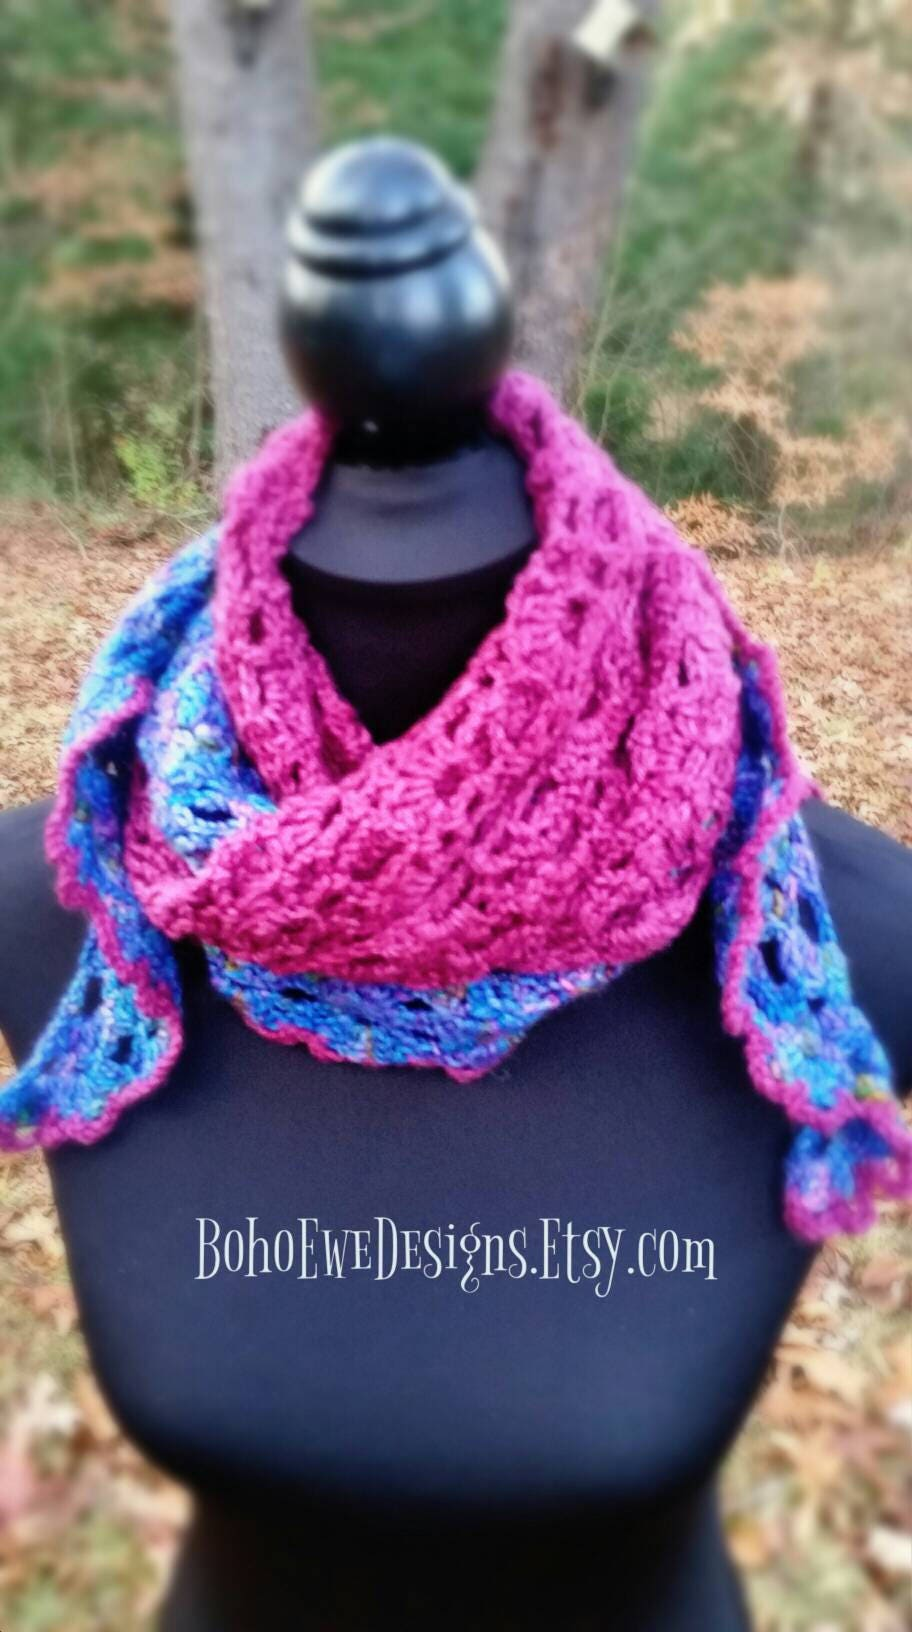 Blue and Purple Crochet Shawl, Crochet Triangle Scarf, Blanket Scarf, Merino, Silk and Cashmere Wrap, Winter Crochet Scarf, Gift for Her